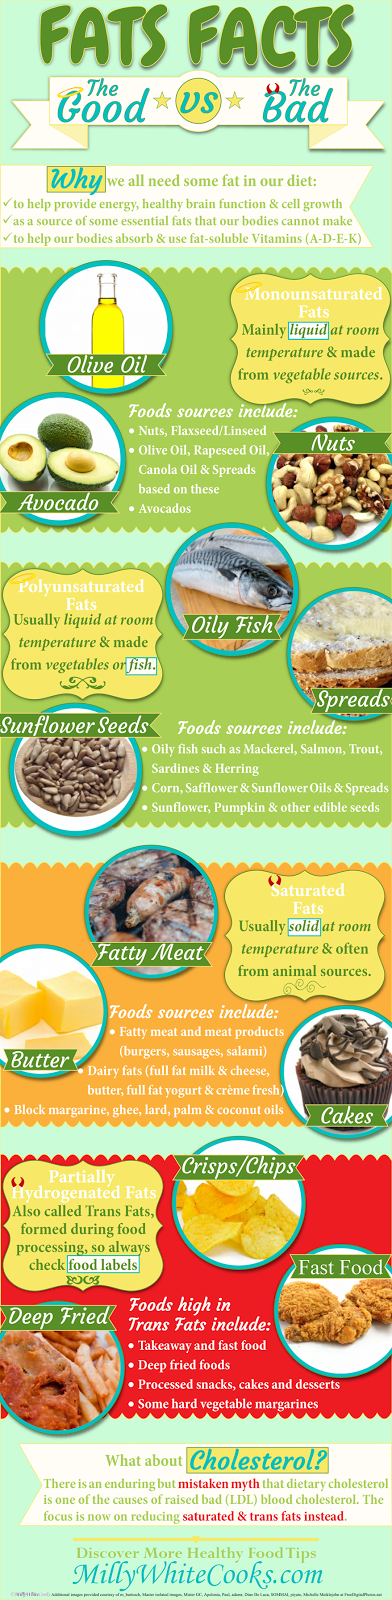 The Facts About Fats: Good vs Bad & Why We All Need Fat in our Diet (Infographic)